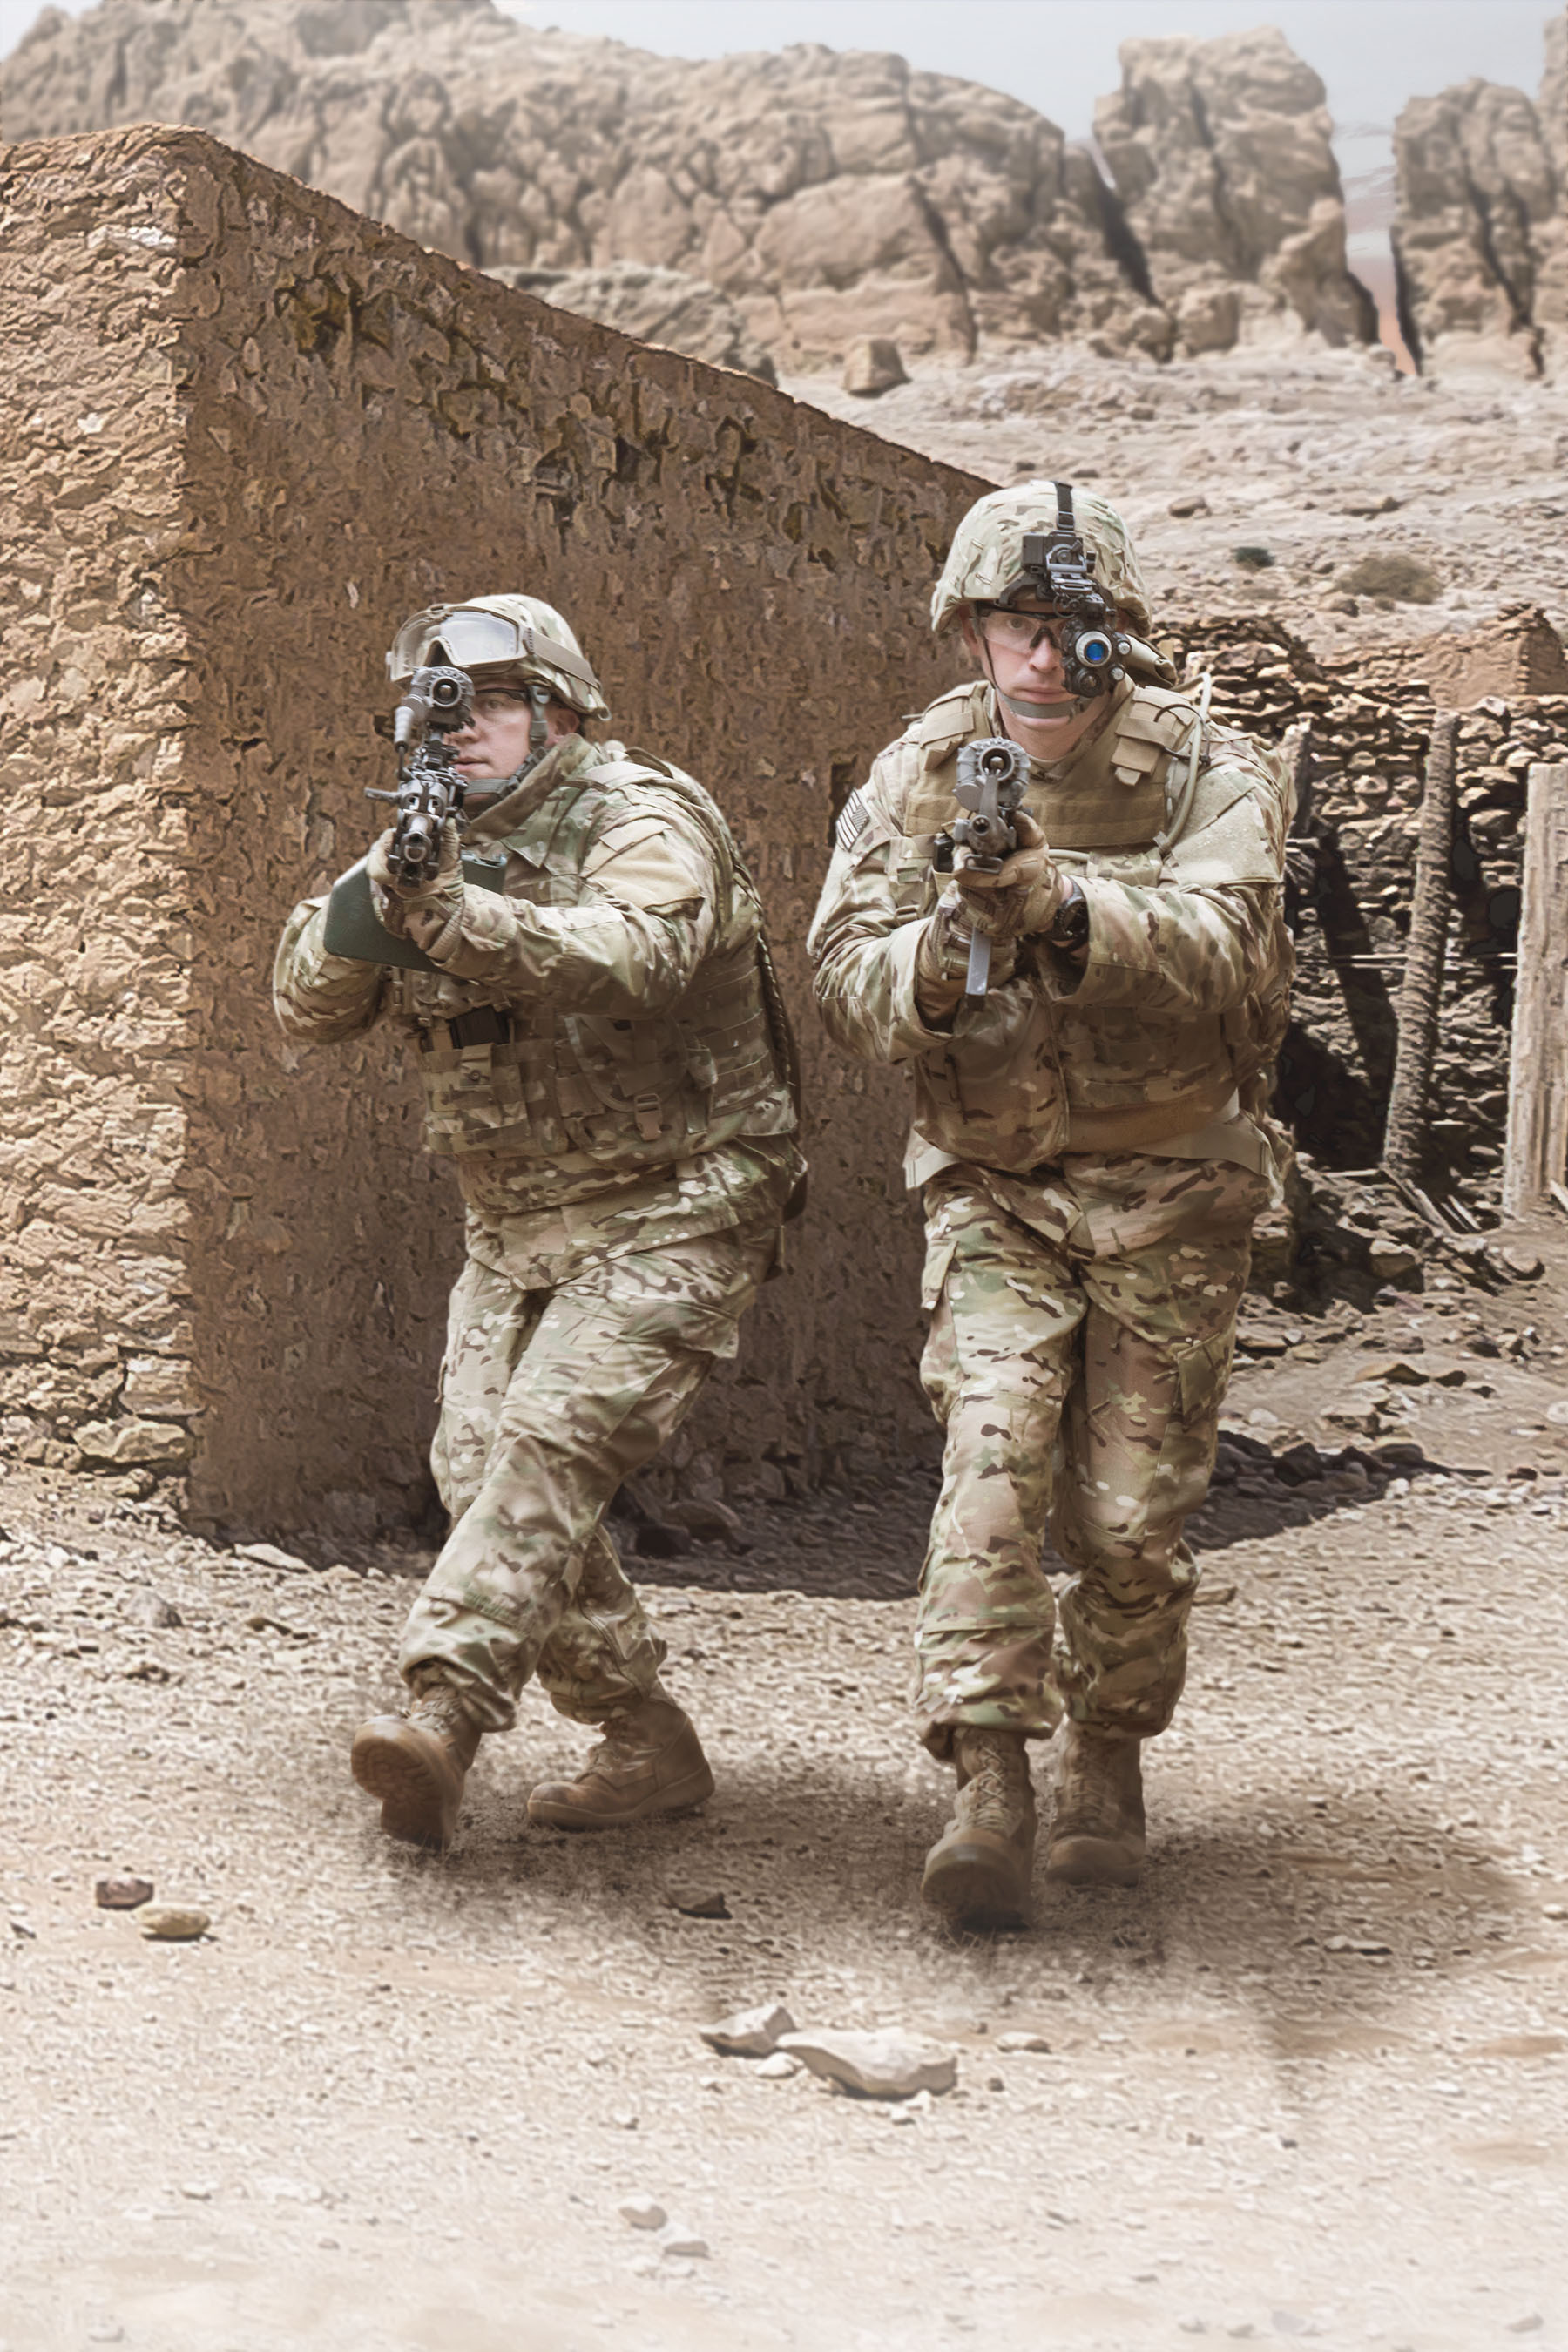 BAE Systems' new FWS-I thermal weapon sight allows soldiers to conduct surveillance and acquire targets in any light or weather conditions, increasing mission safety and effectiveness. (Photo: BAE Systems)